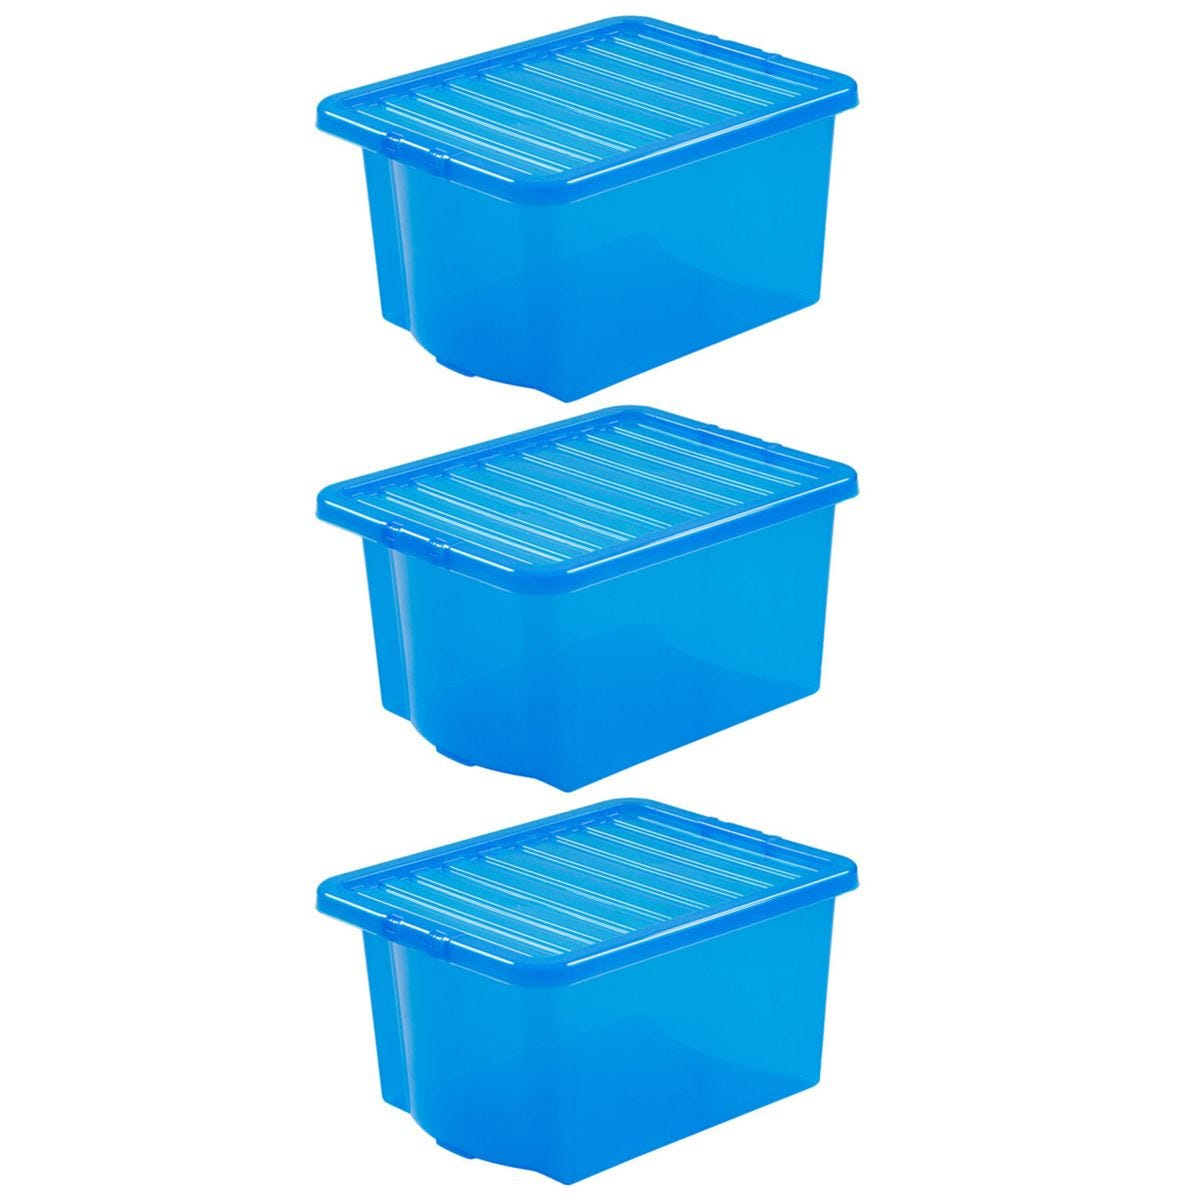 Wham Crystal Blue Storage Box with Lid 35L - Set of 3